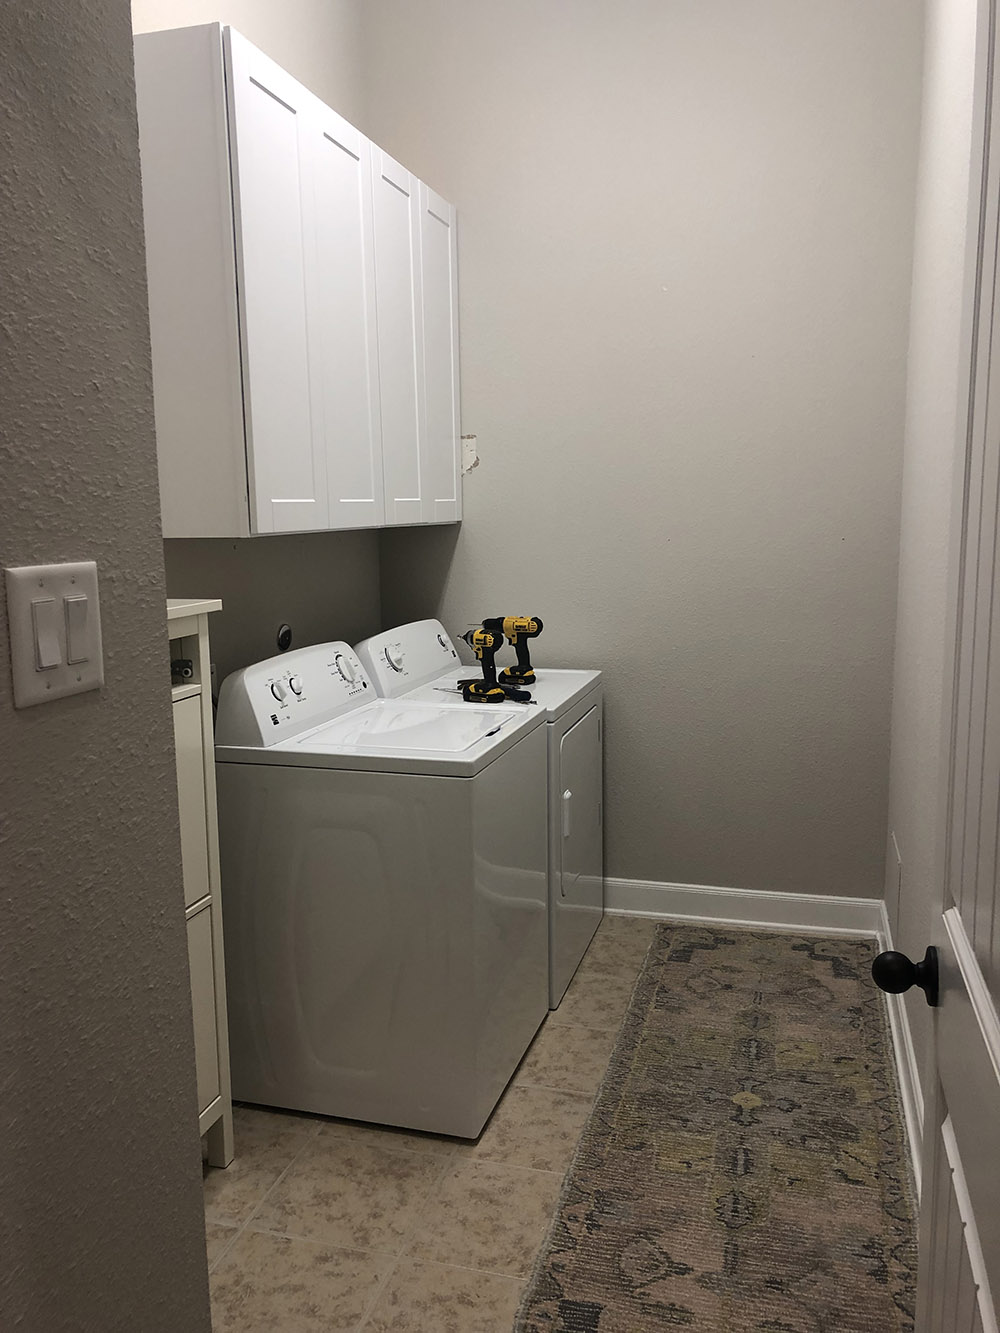 A pair of white cabinets mounted on a wall above a washer and dryer.